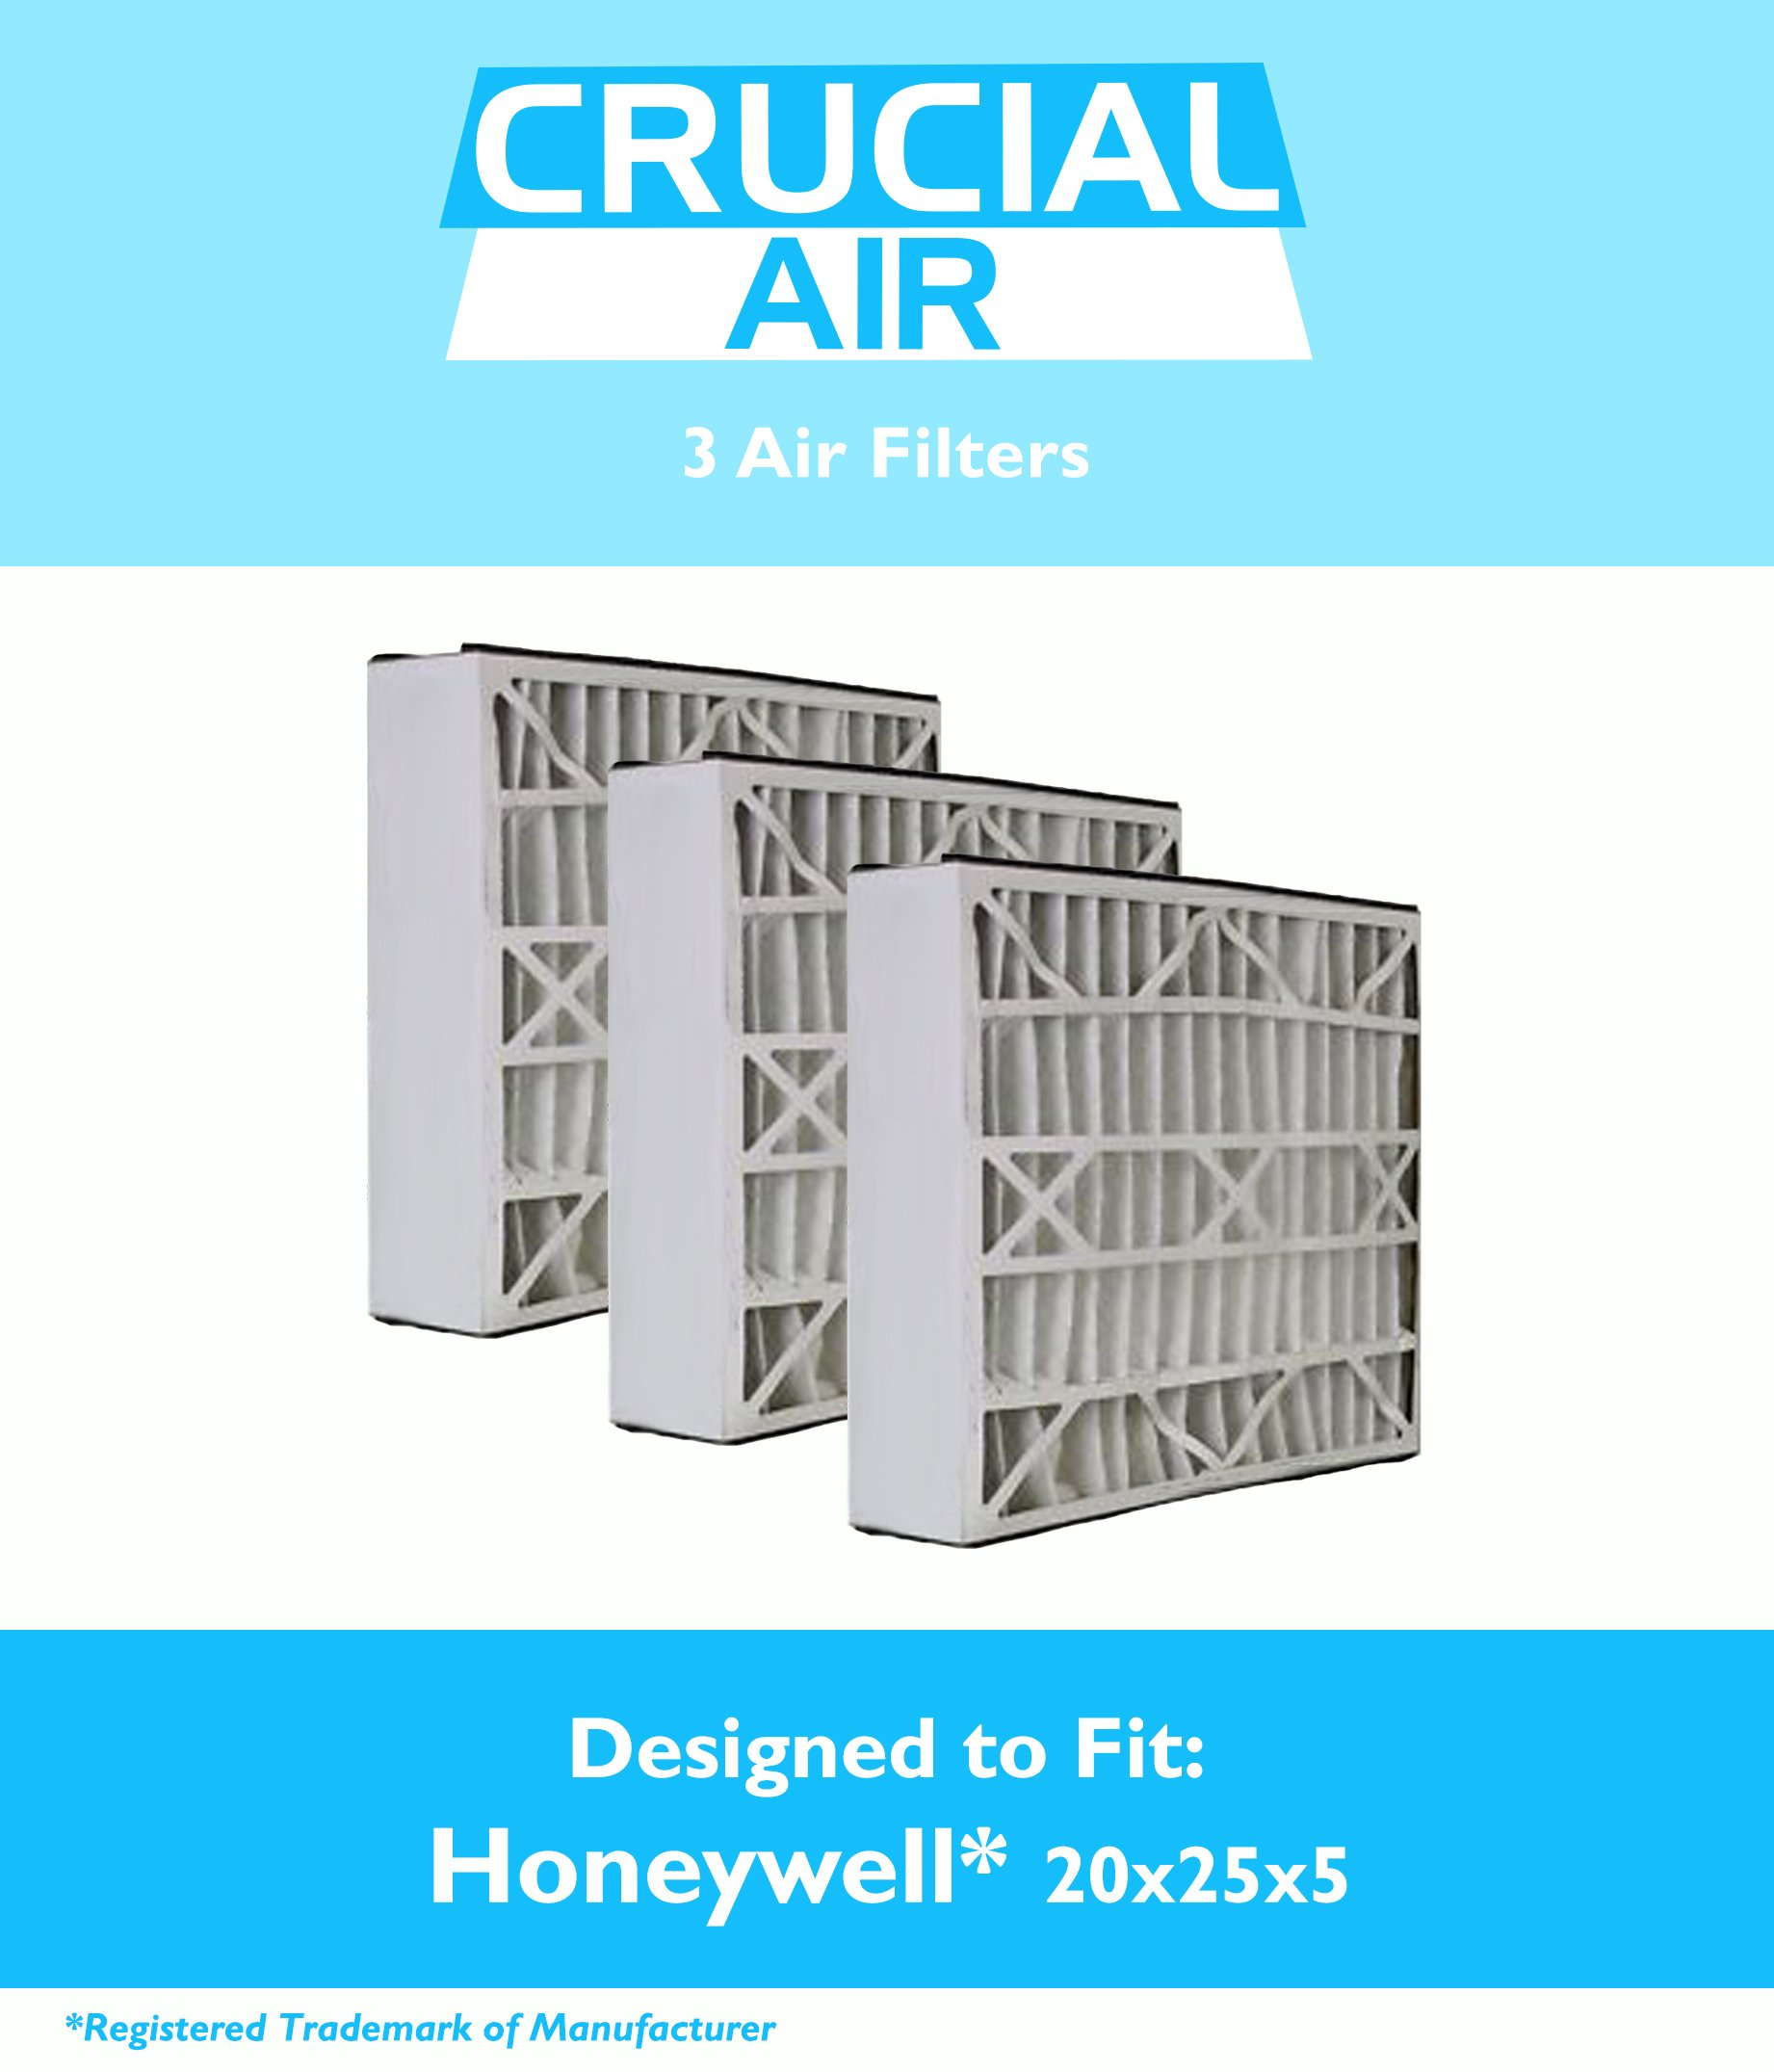 Think Crucial 3 Replacements for Honeywell 20x25x5 FC100A1037 Merv 8 Furnace Air Filter by Crucial Air (Image #1)